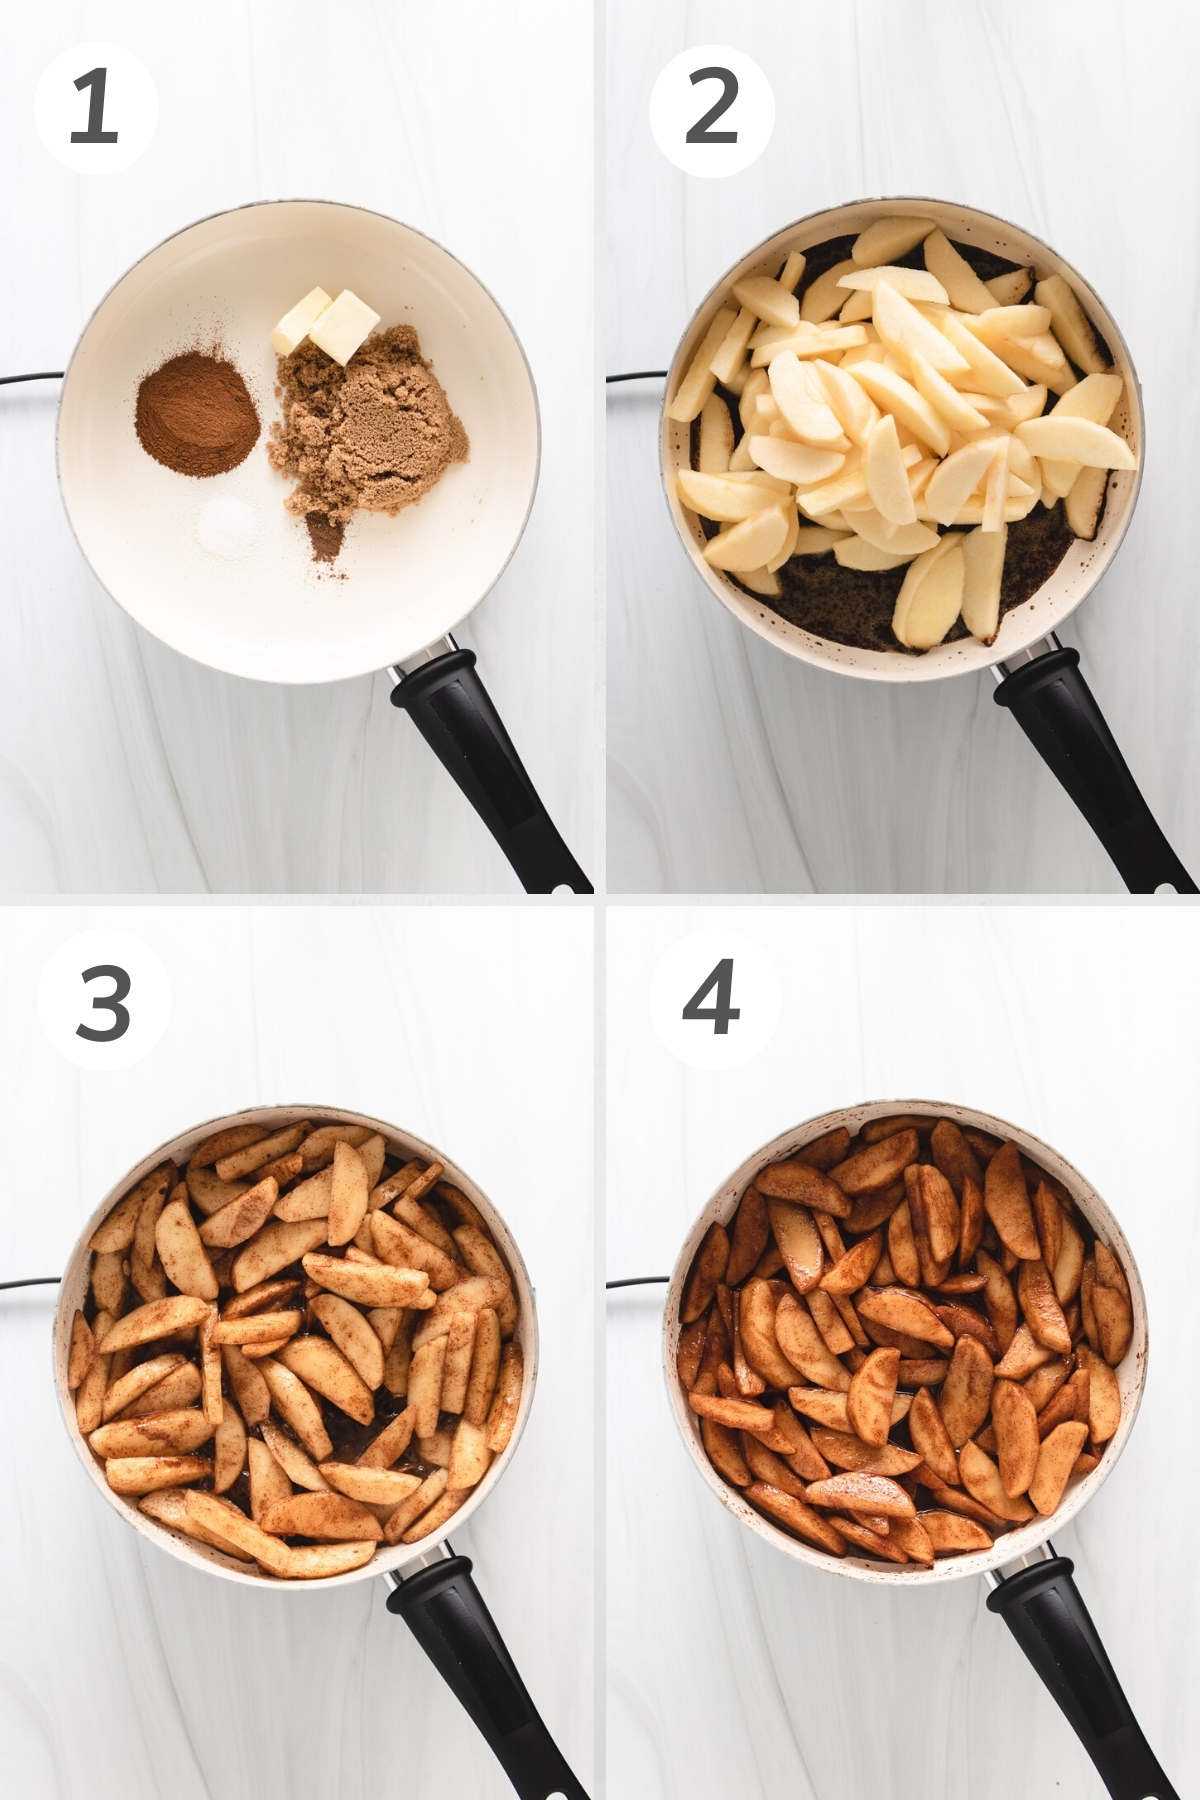 Collage showing how to make cinnamon apples.